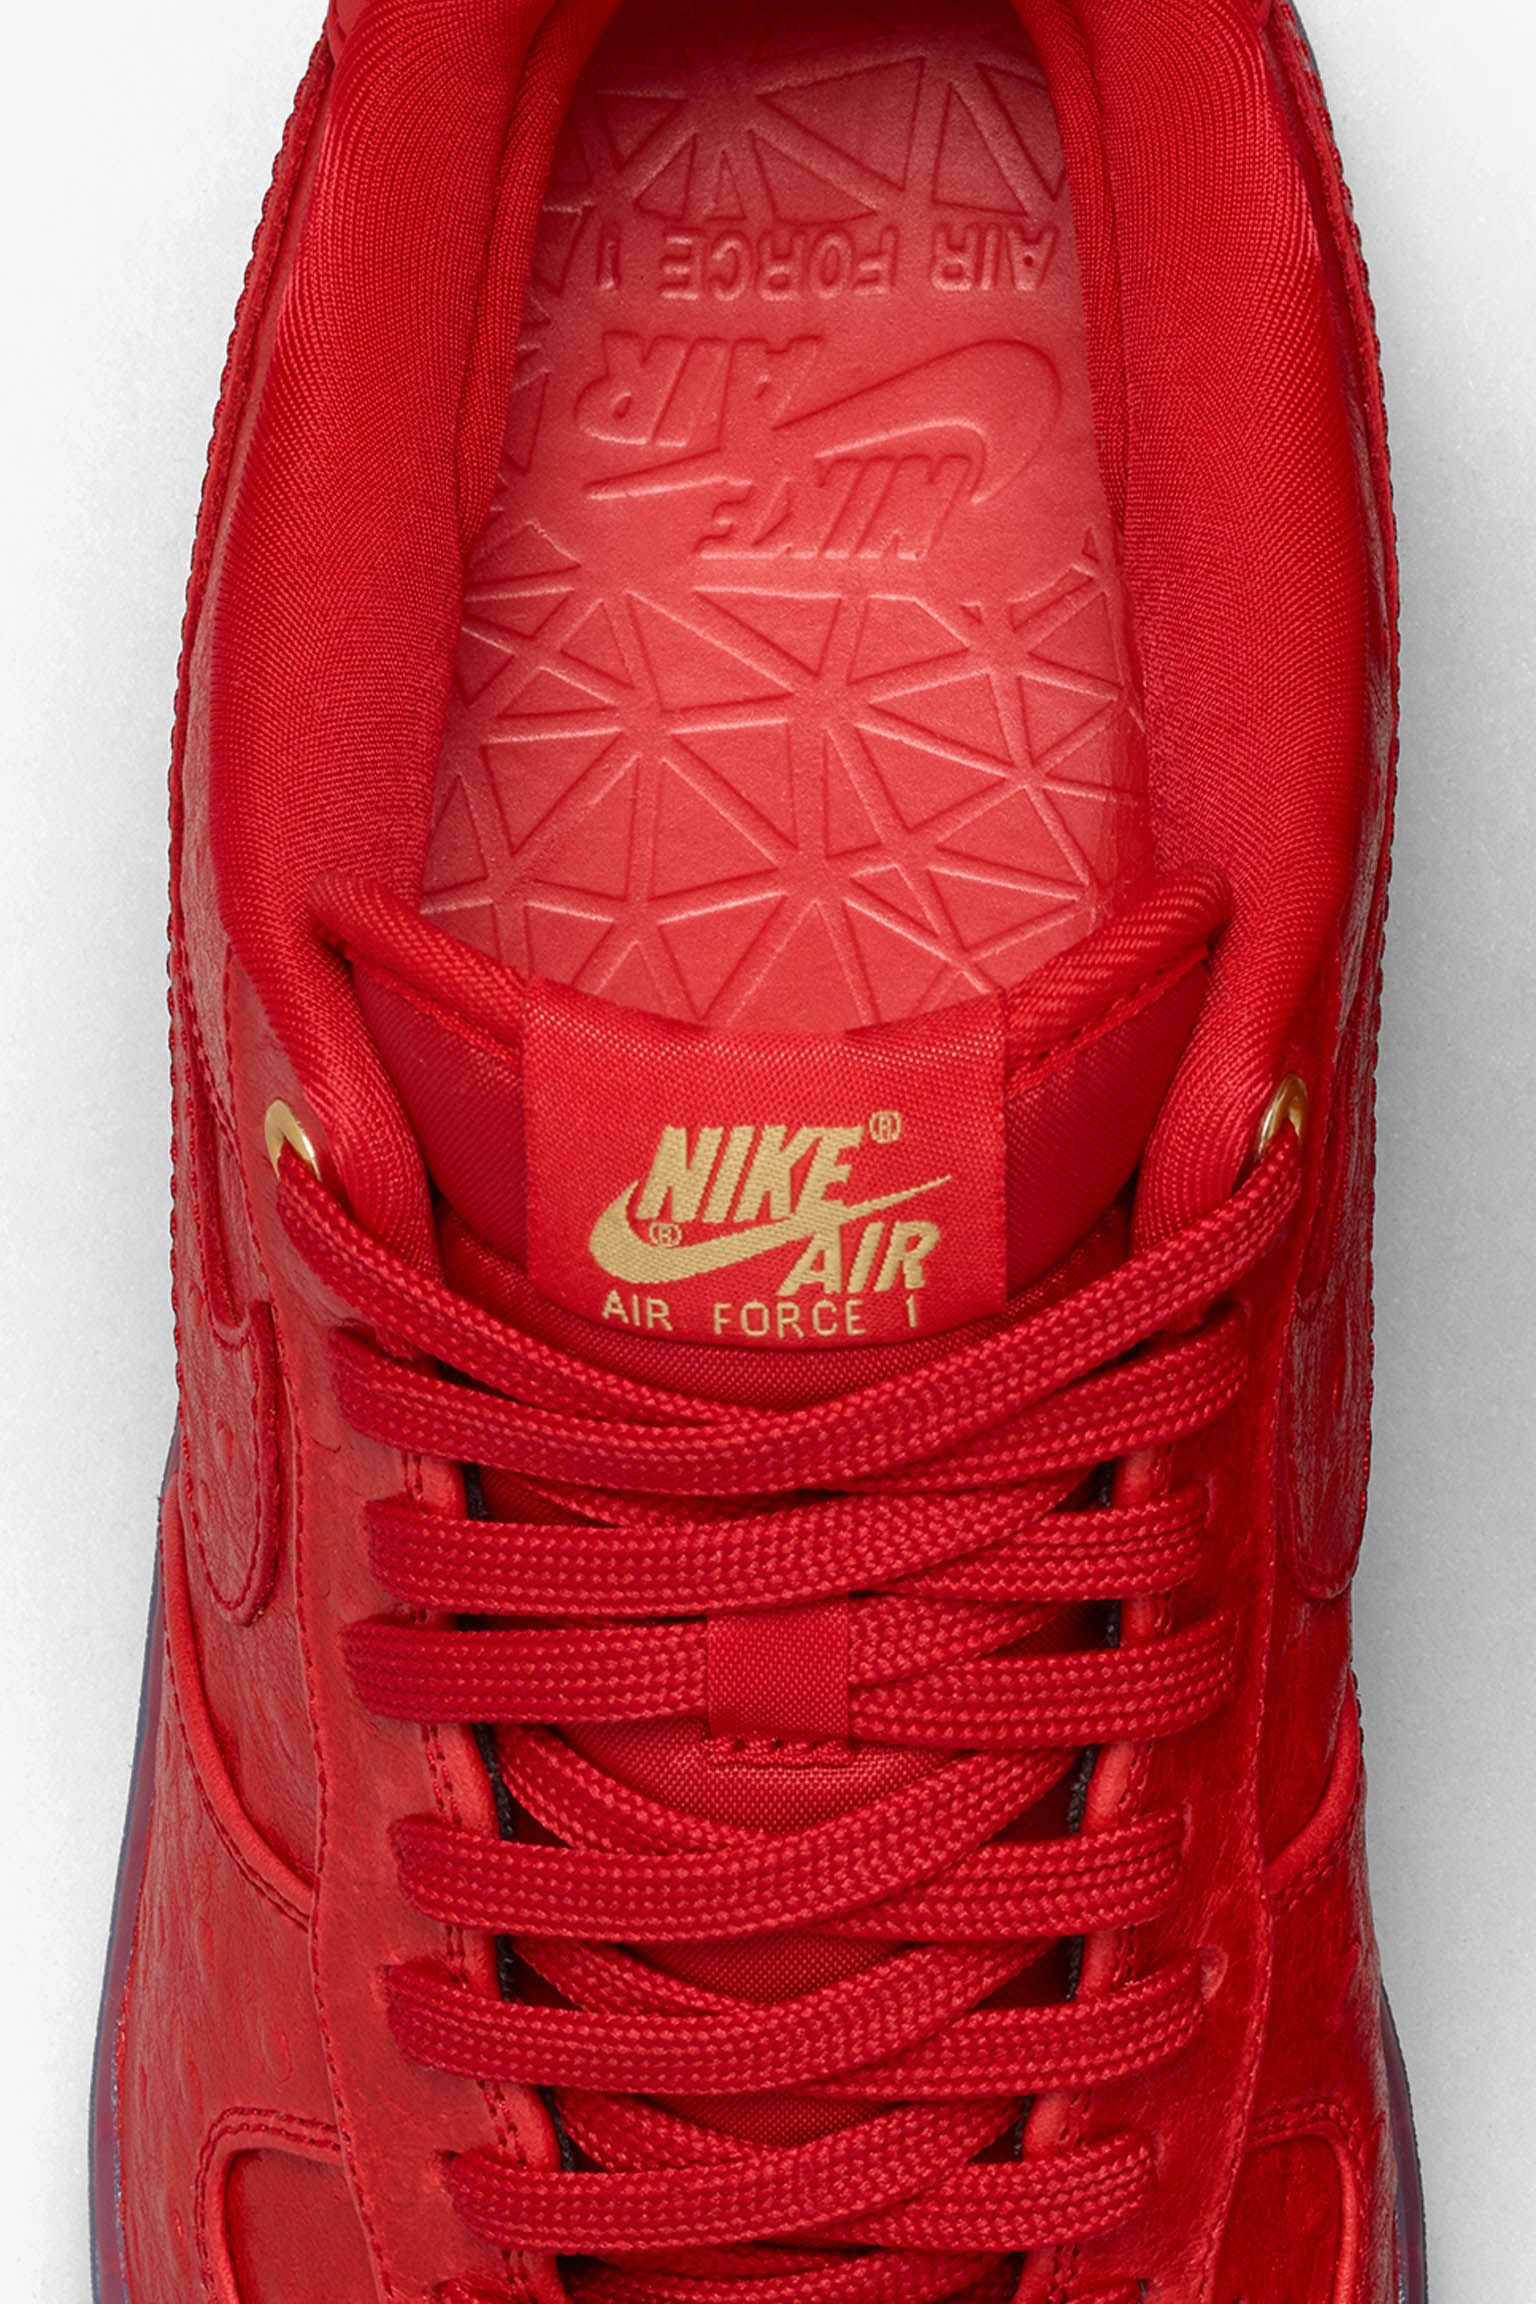 Nike Air Force 1 CMFT Low 'University Red'